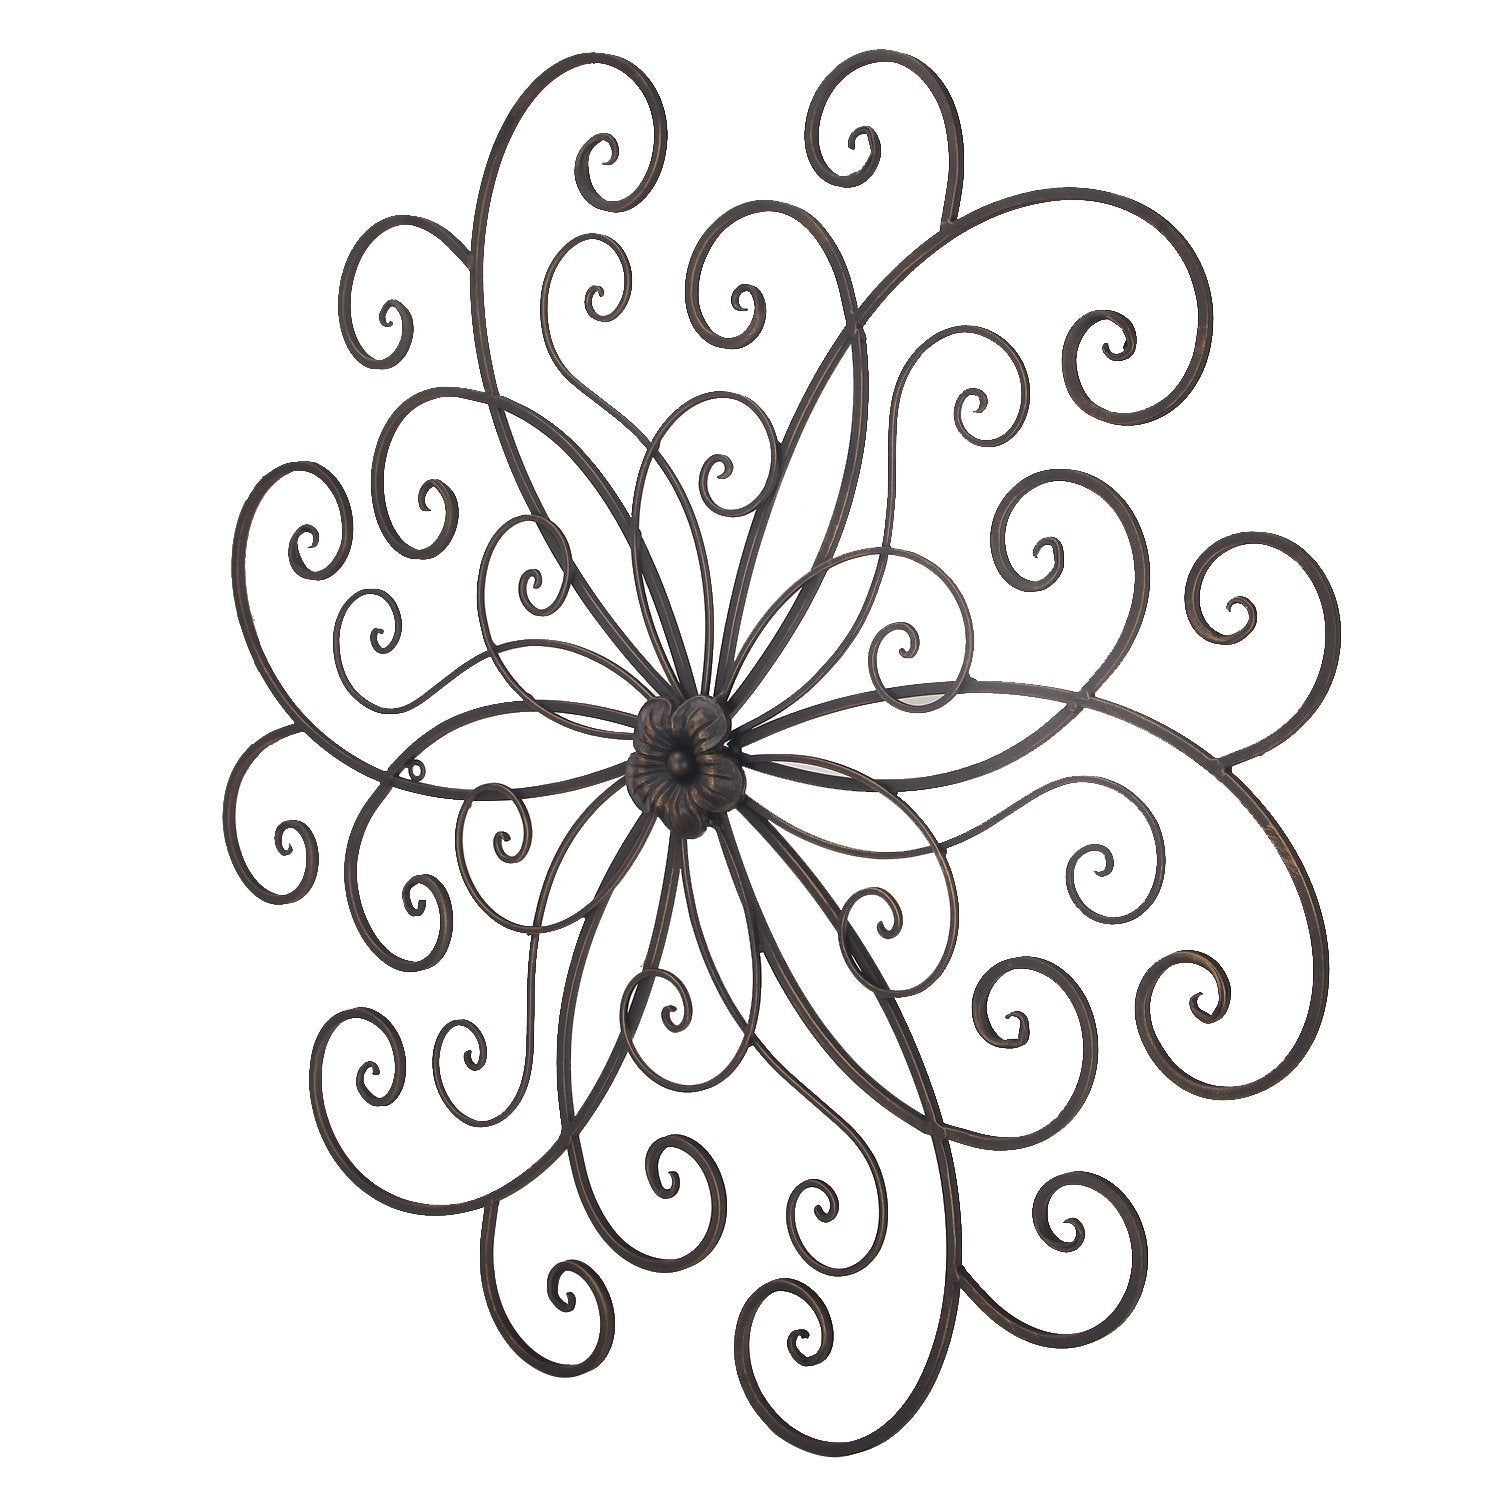 Shop Adeco Bronze Flower Urban Design Metal Wall Decor For Nature Inside Newest Flower Urban Design Metal Wall Decor (Gallery 10 of 20)